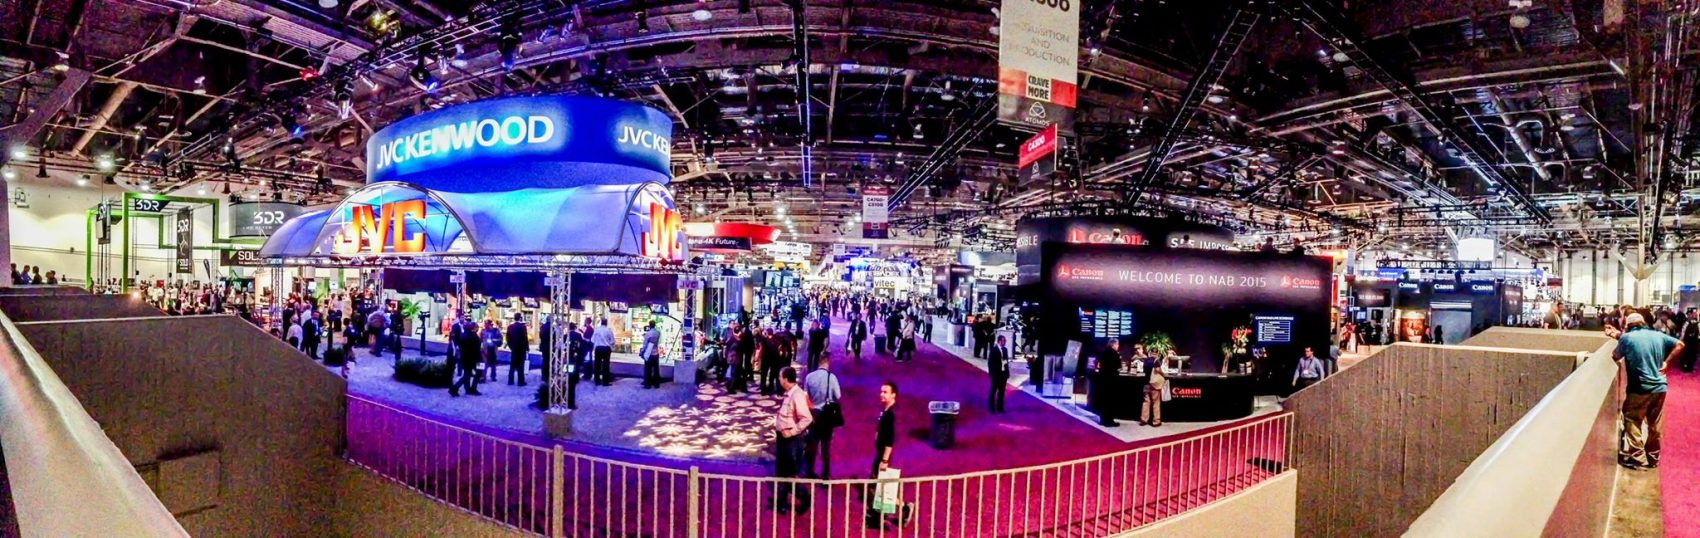 Our List of Top Exhibitors to See at NAB 2016